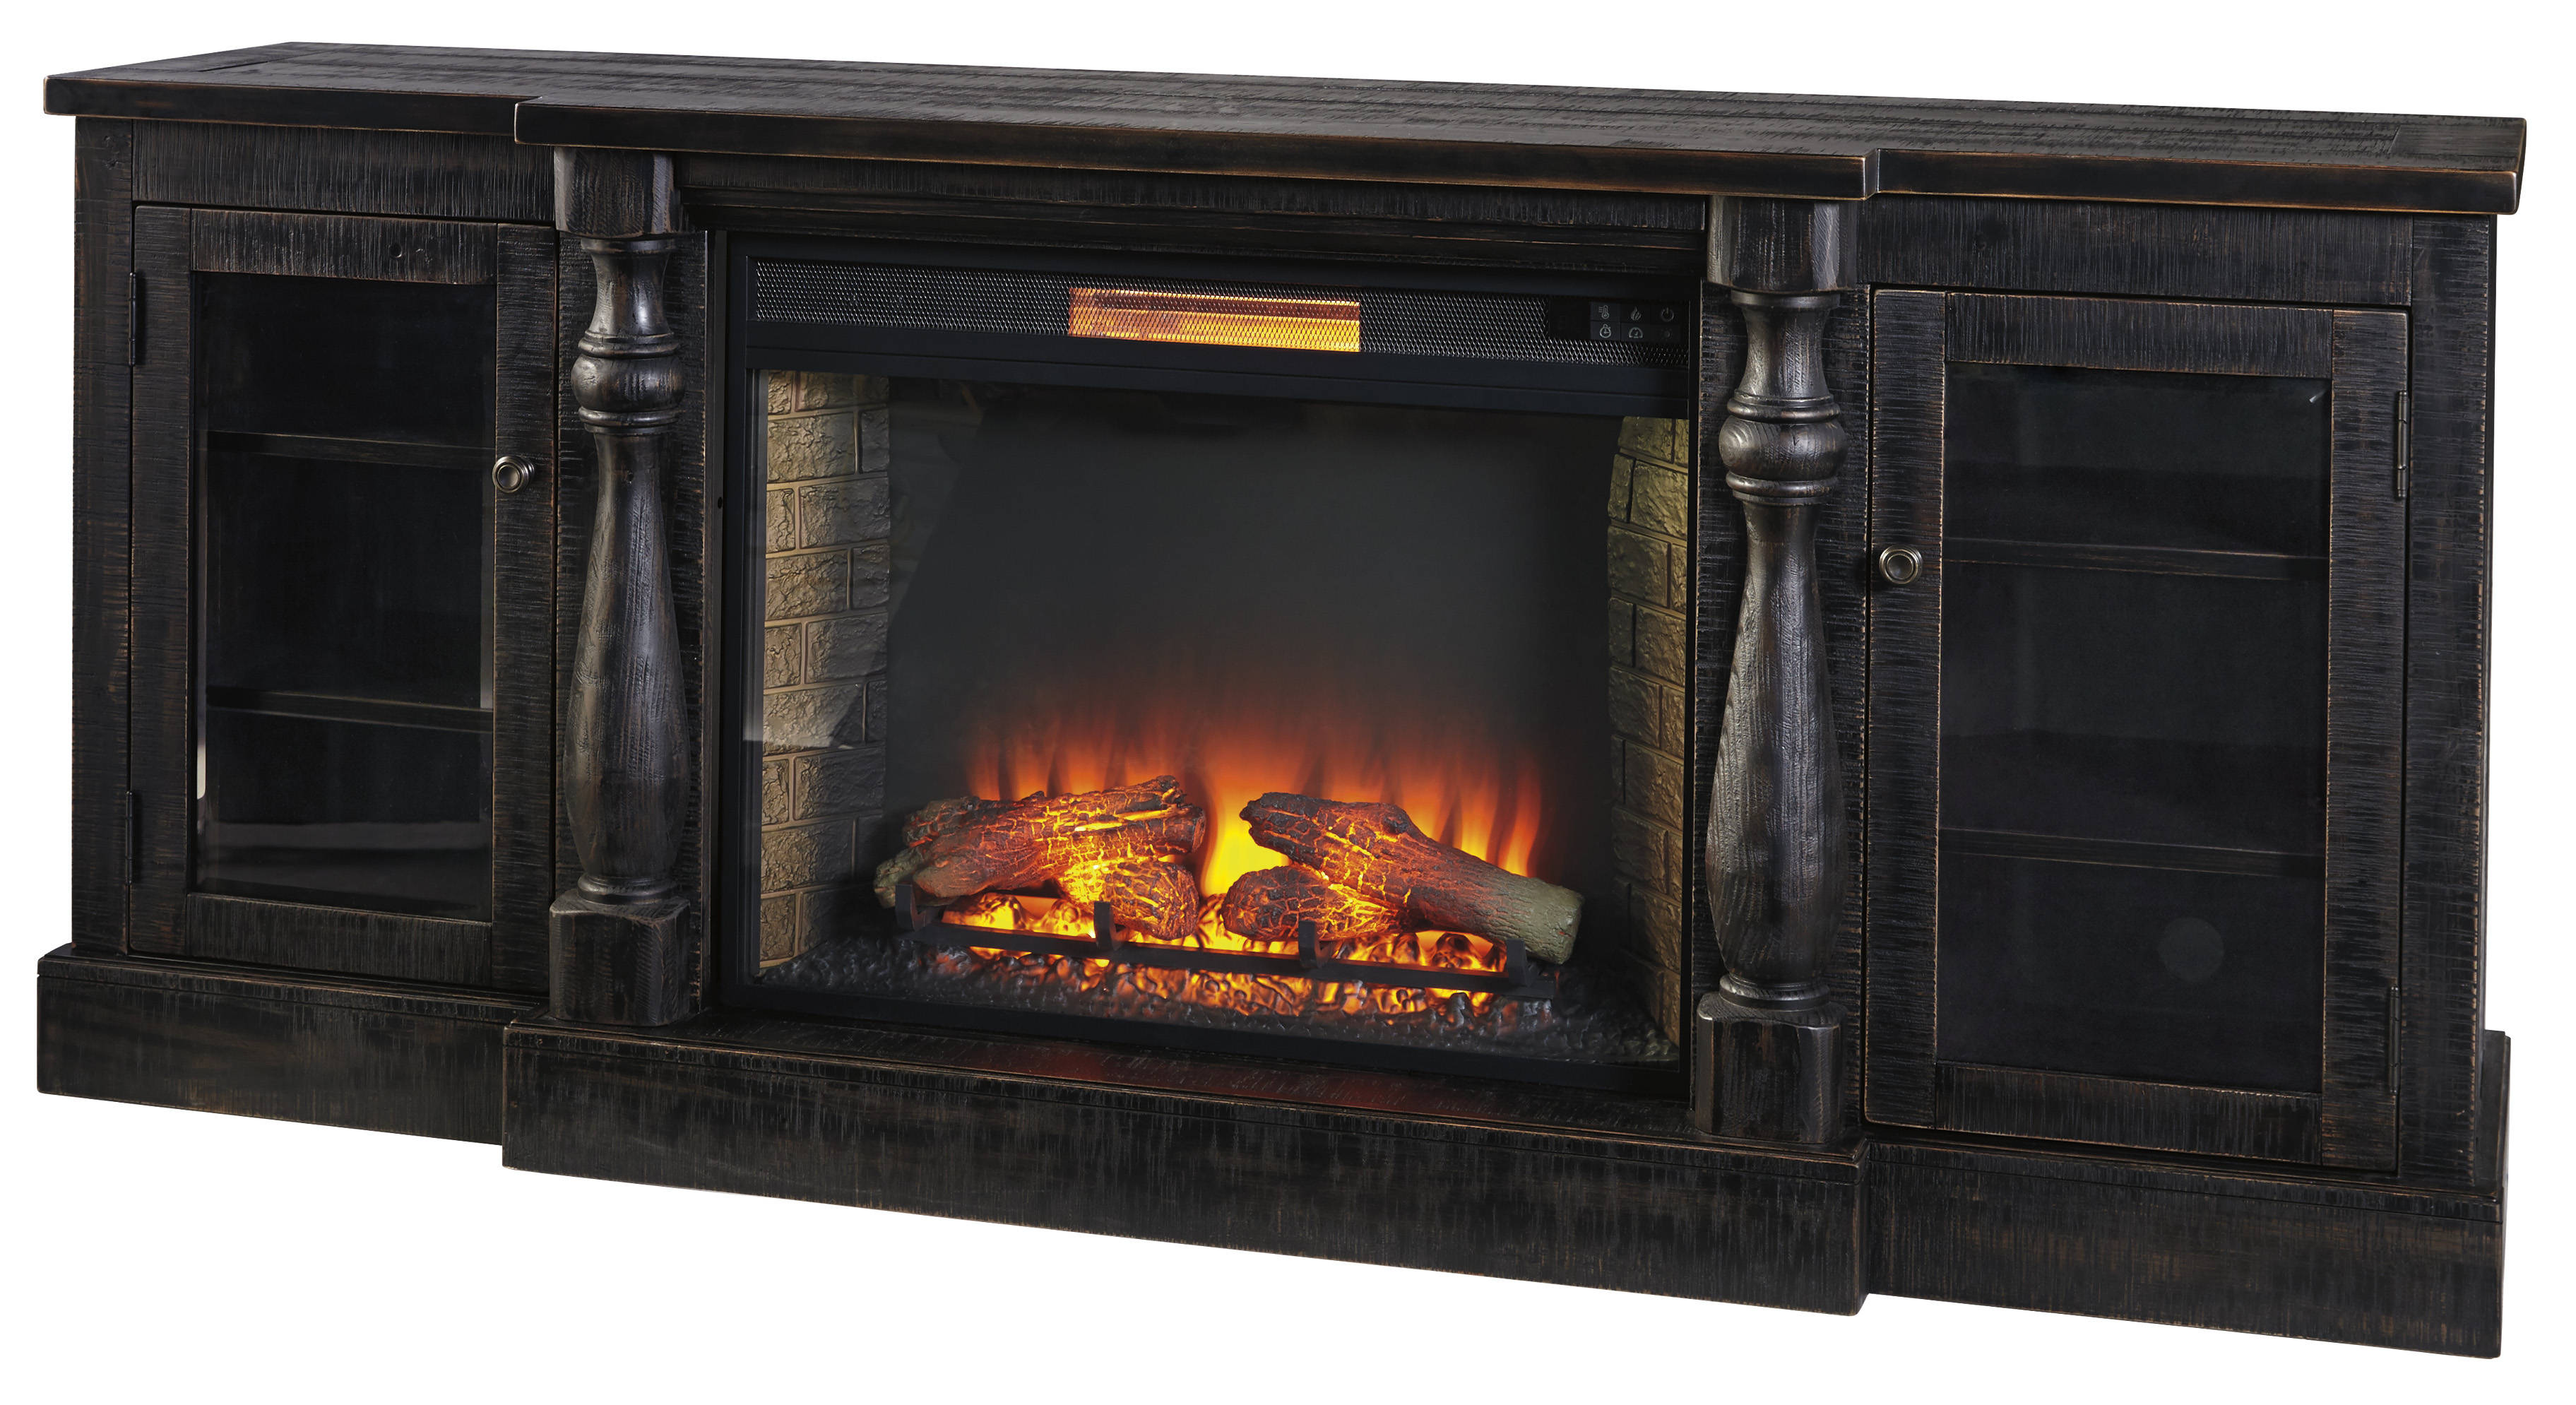 Ashley Furniture Mallacar Tv Stand With Fireplace The Classy Home